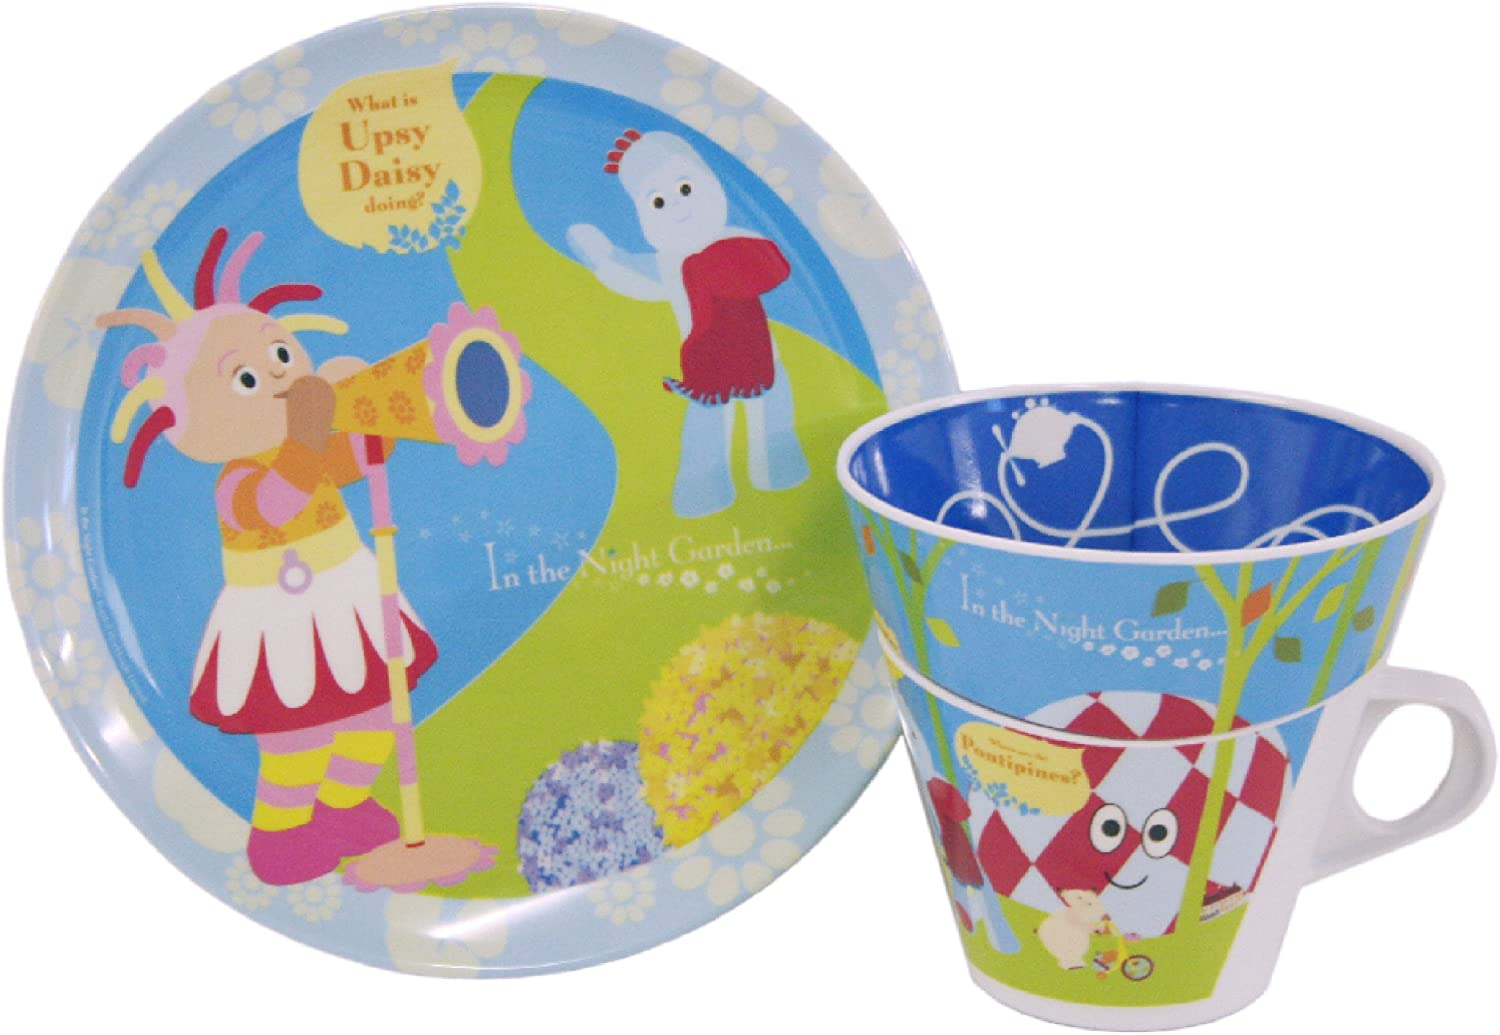 in the Night Garden Iggle Piggle Upsy Daisy Makka Pakka Nested Gift Set Stack Able Plate Bowl and Cup